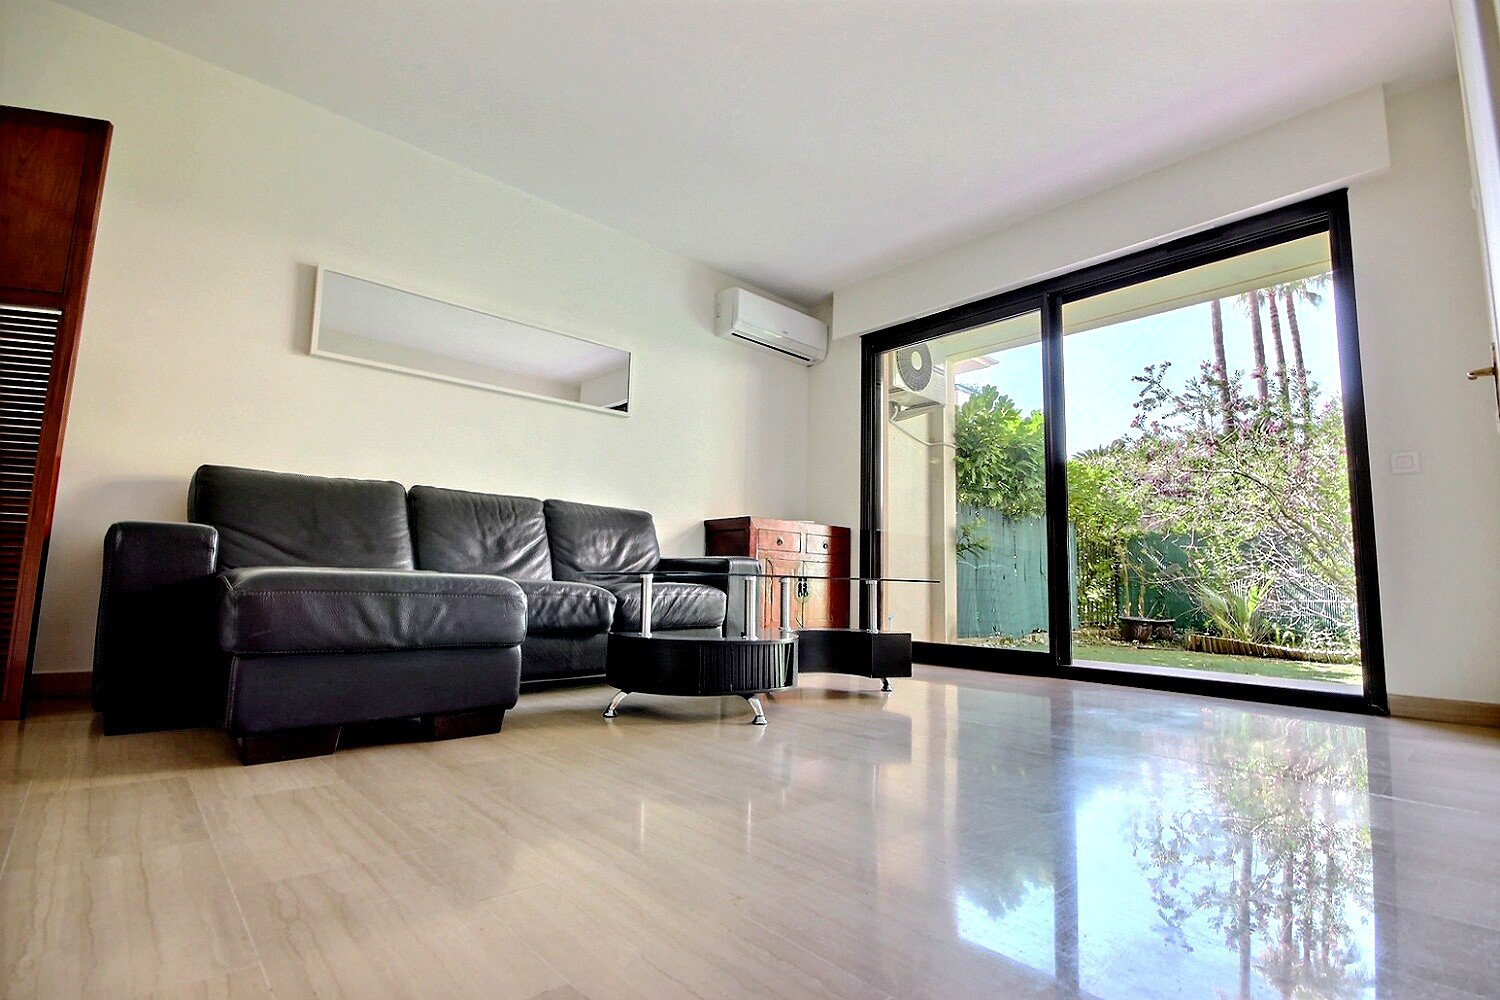 Apartment for sale - Cannes - Parc Aiguebel - swimming pool - tennis